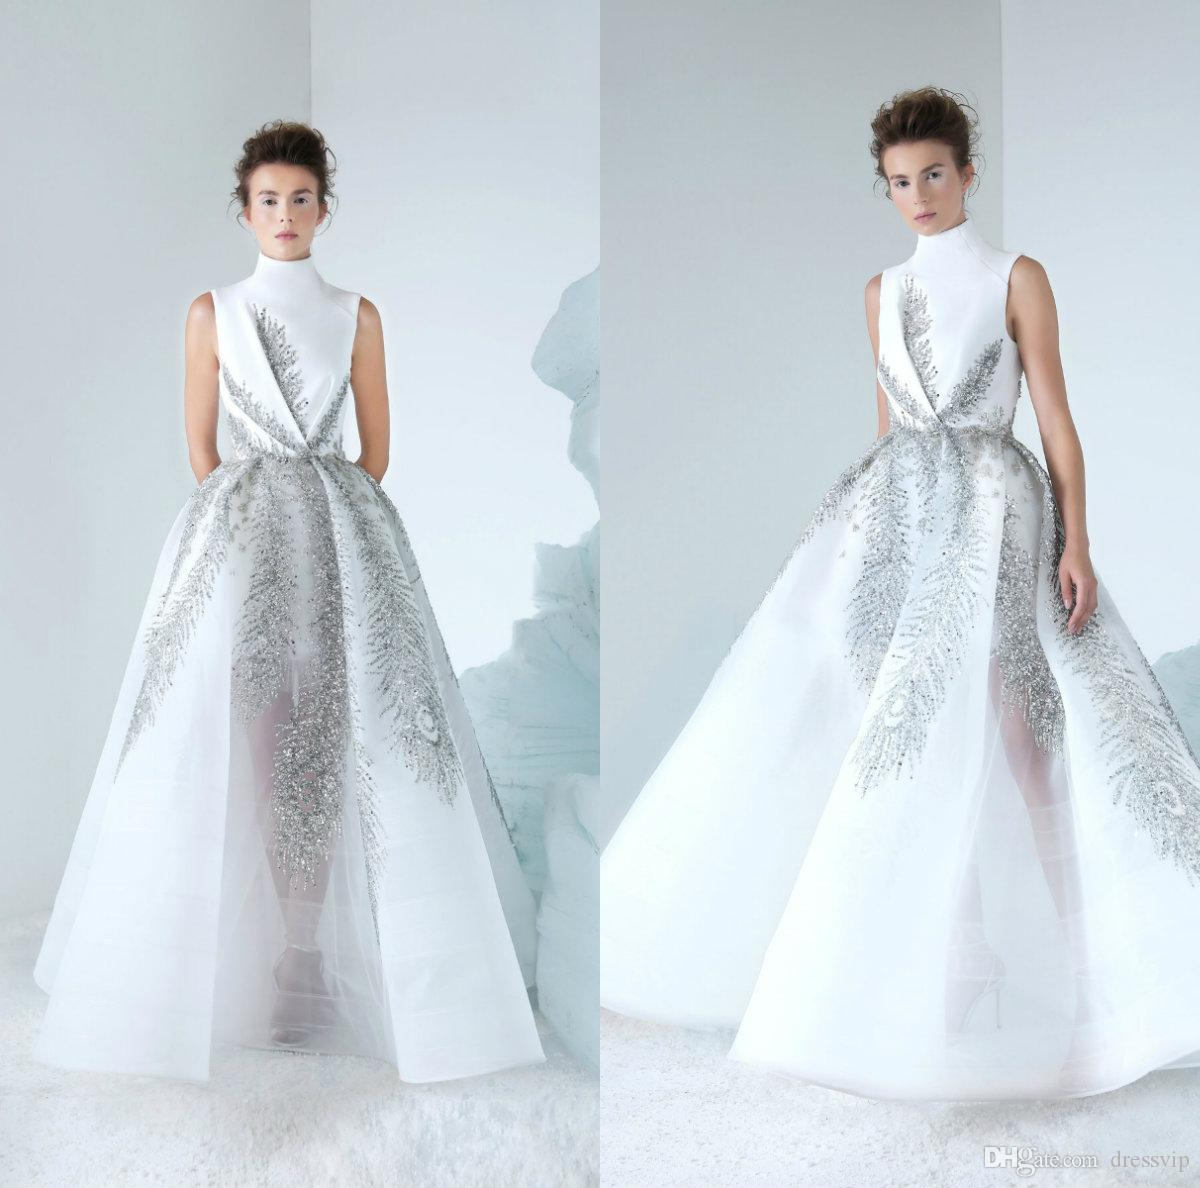 0c0a1a34586 2019 Azzi Osta Lebanon Prom Dresses High Neck Luxury Beads Sequins Tulle  Floor Length Evening Dress Party Wear Custom Made Formal Gowns Evening  Dresses ...